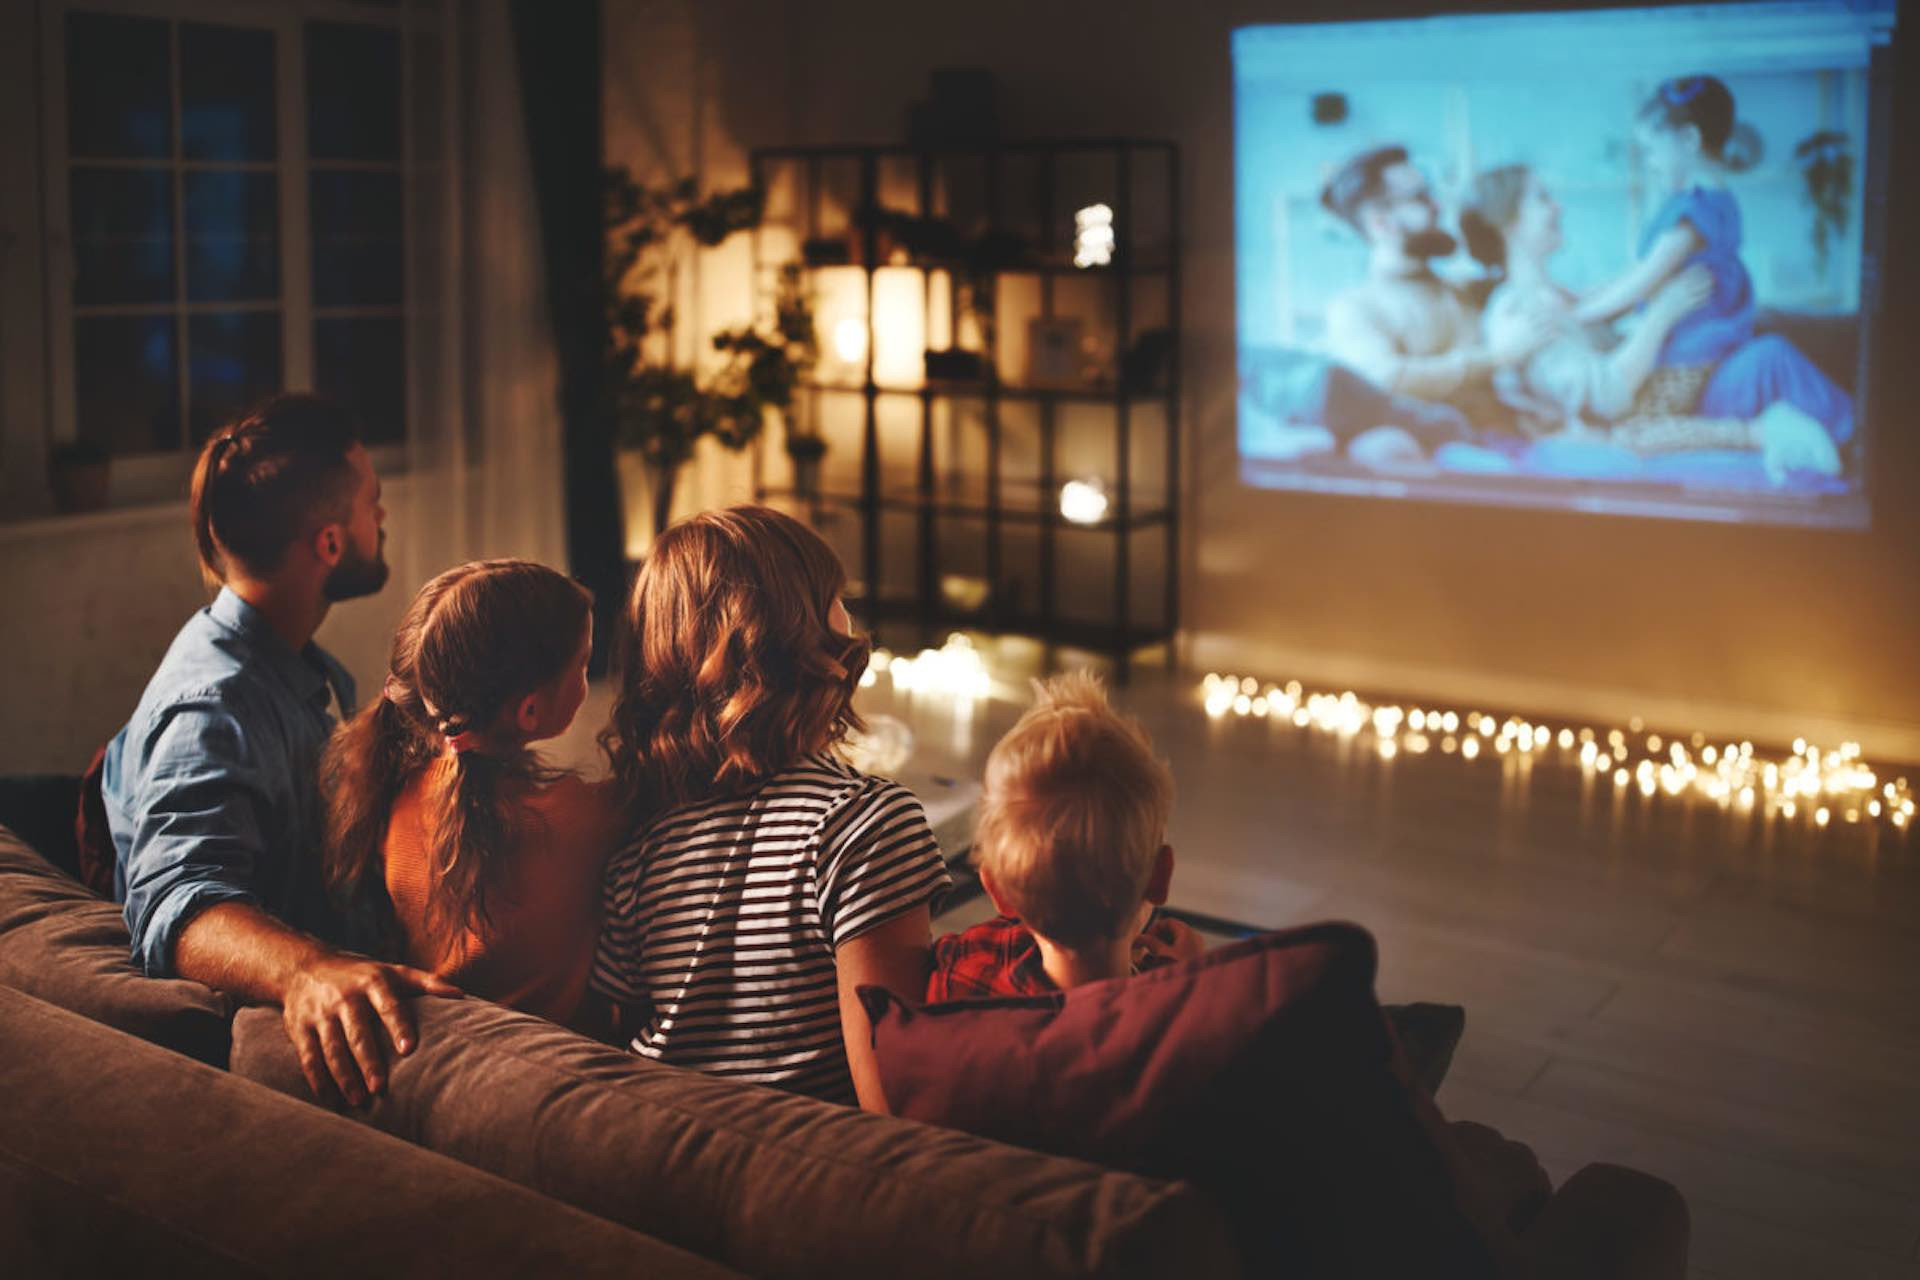 You can never go wrong with a movie night, so let's have one with the whole family! Grab the snacks and watch these all-time classic PG movies.